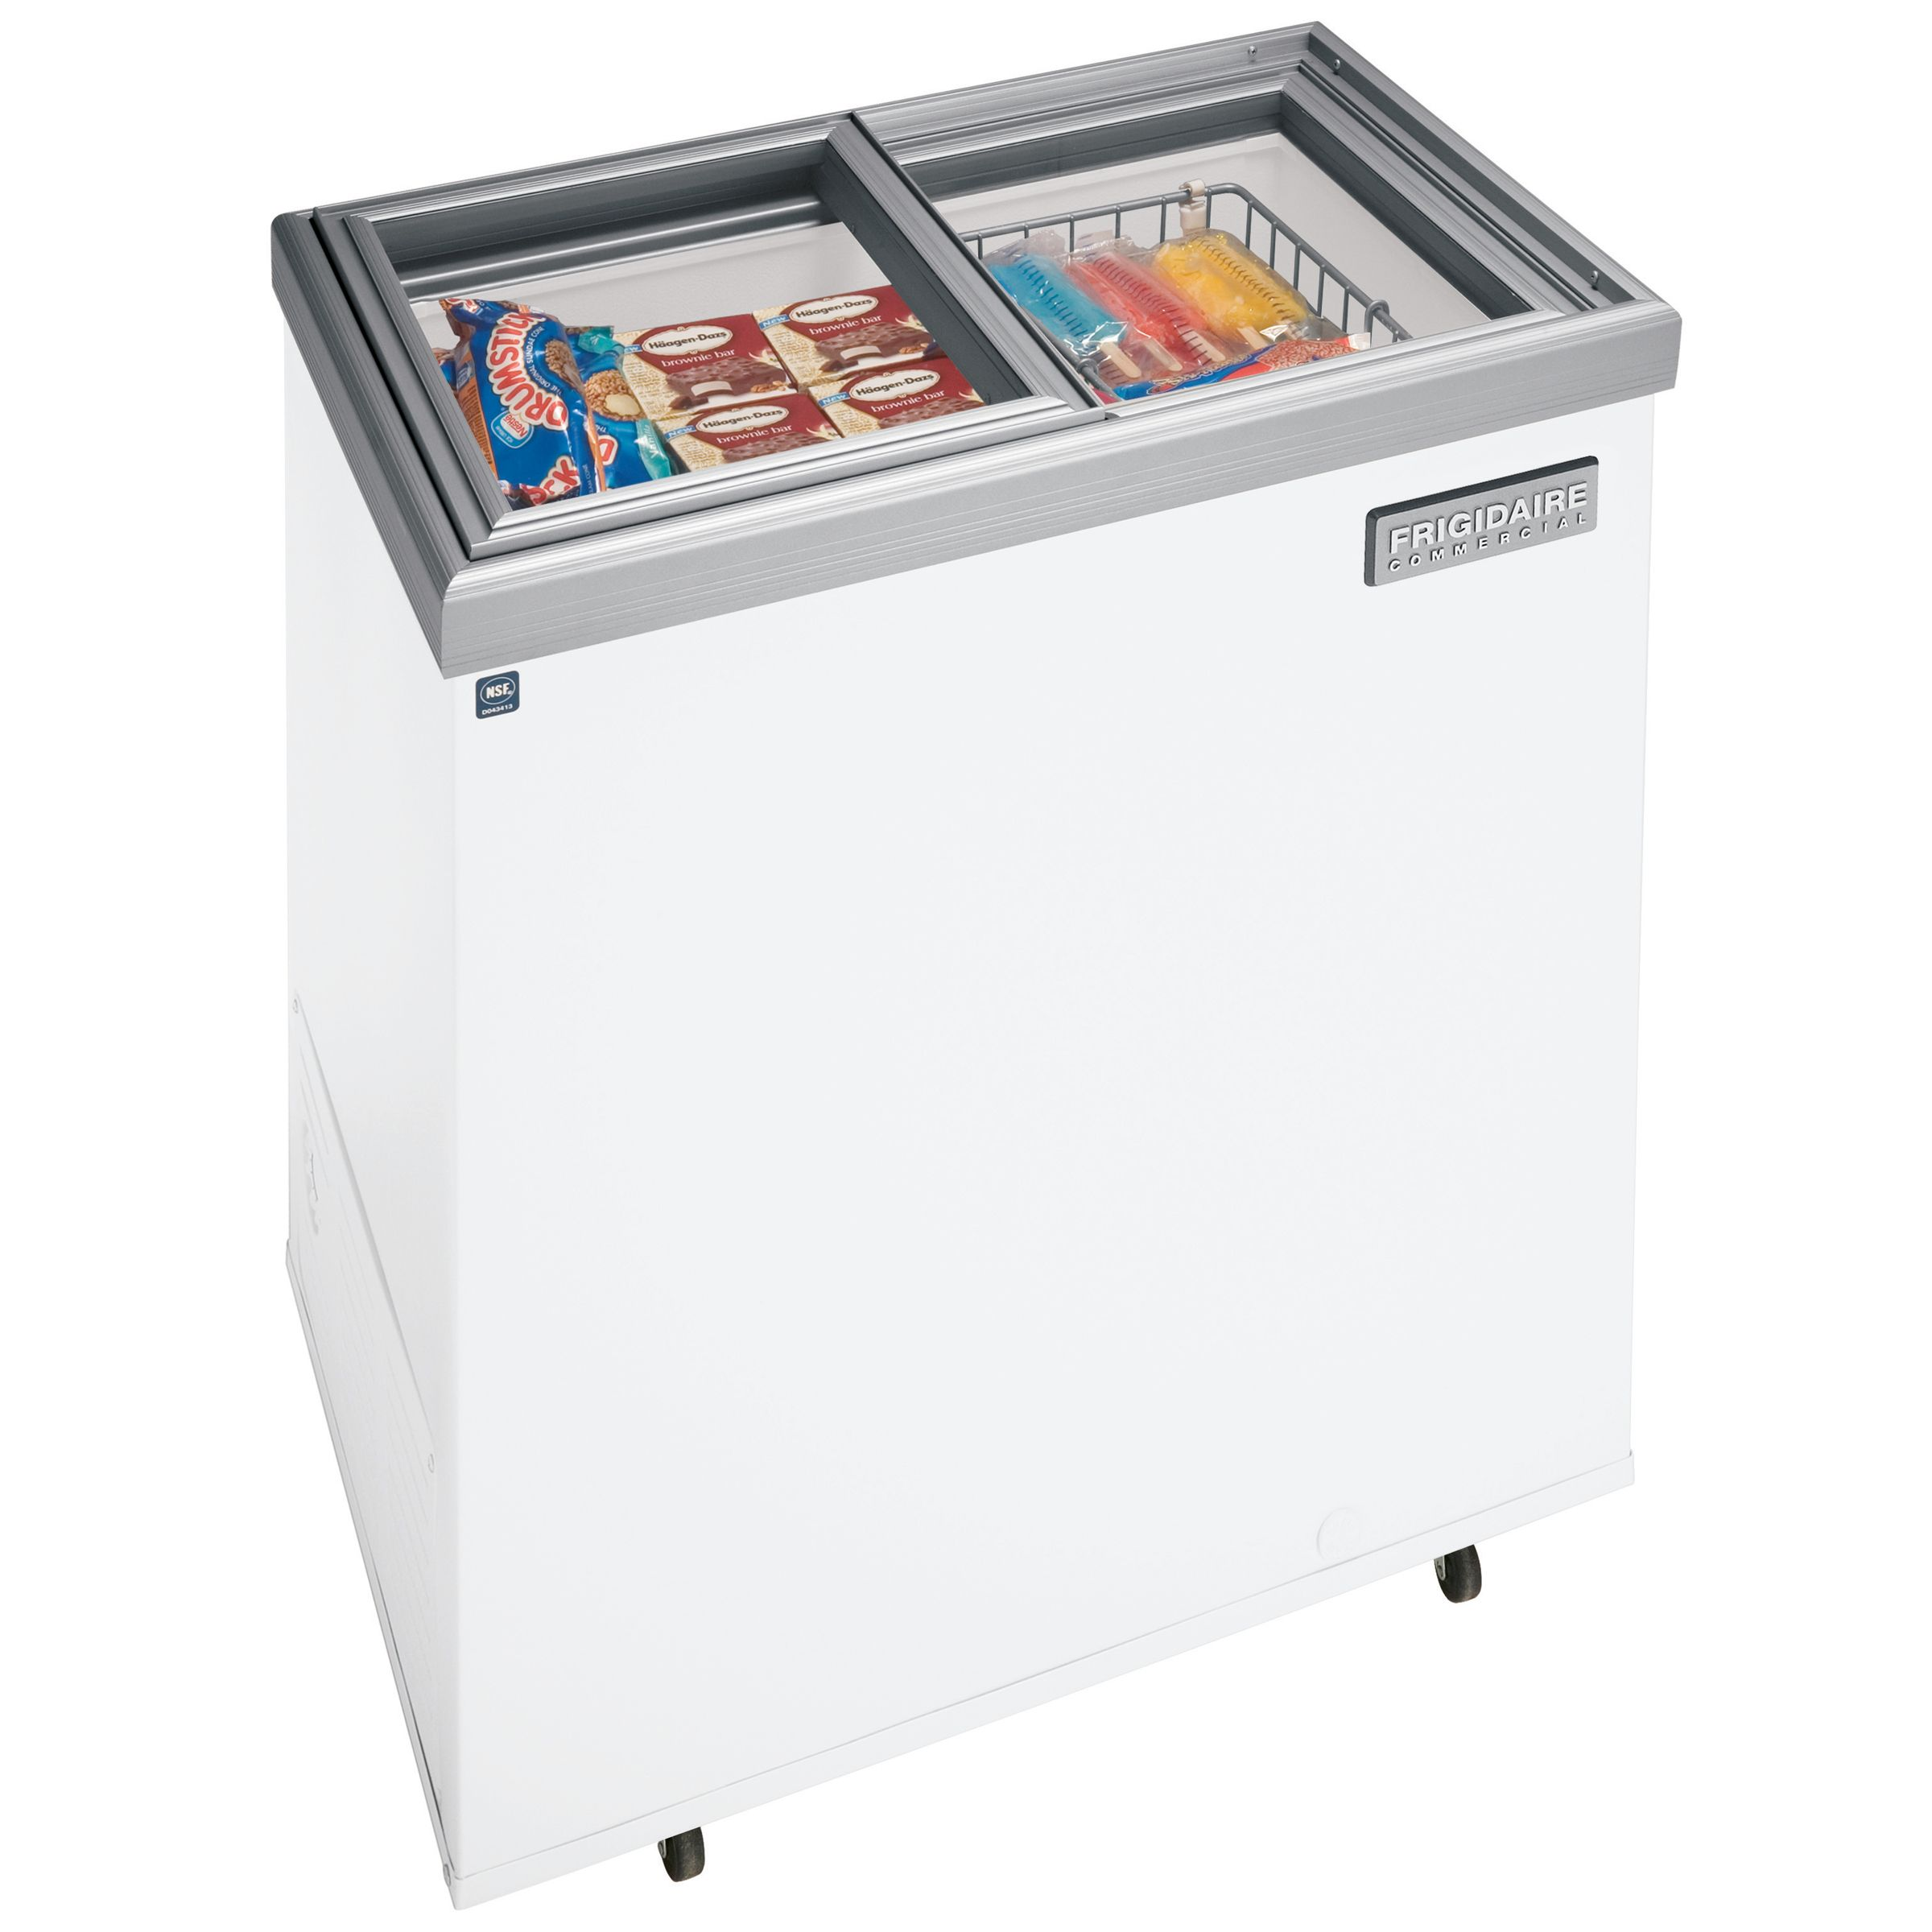 Kmart Freezer Frigidaire Fccg071fw 7 2 Cu Ft Ice Cream Freezer